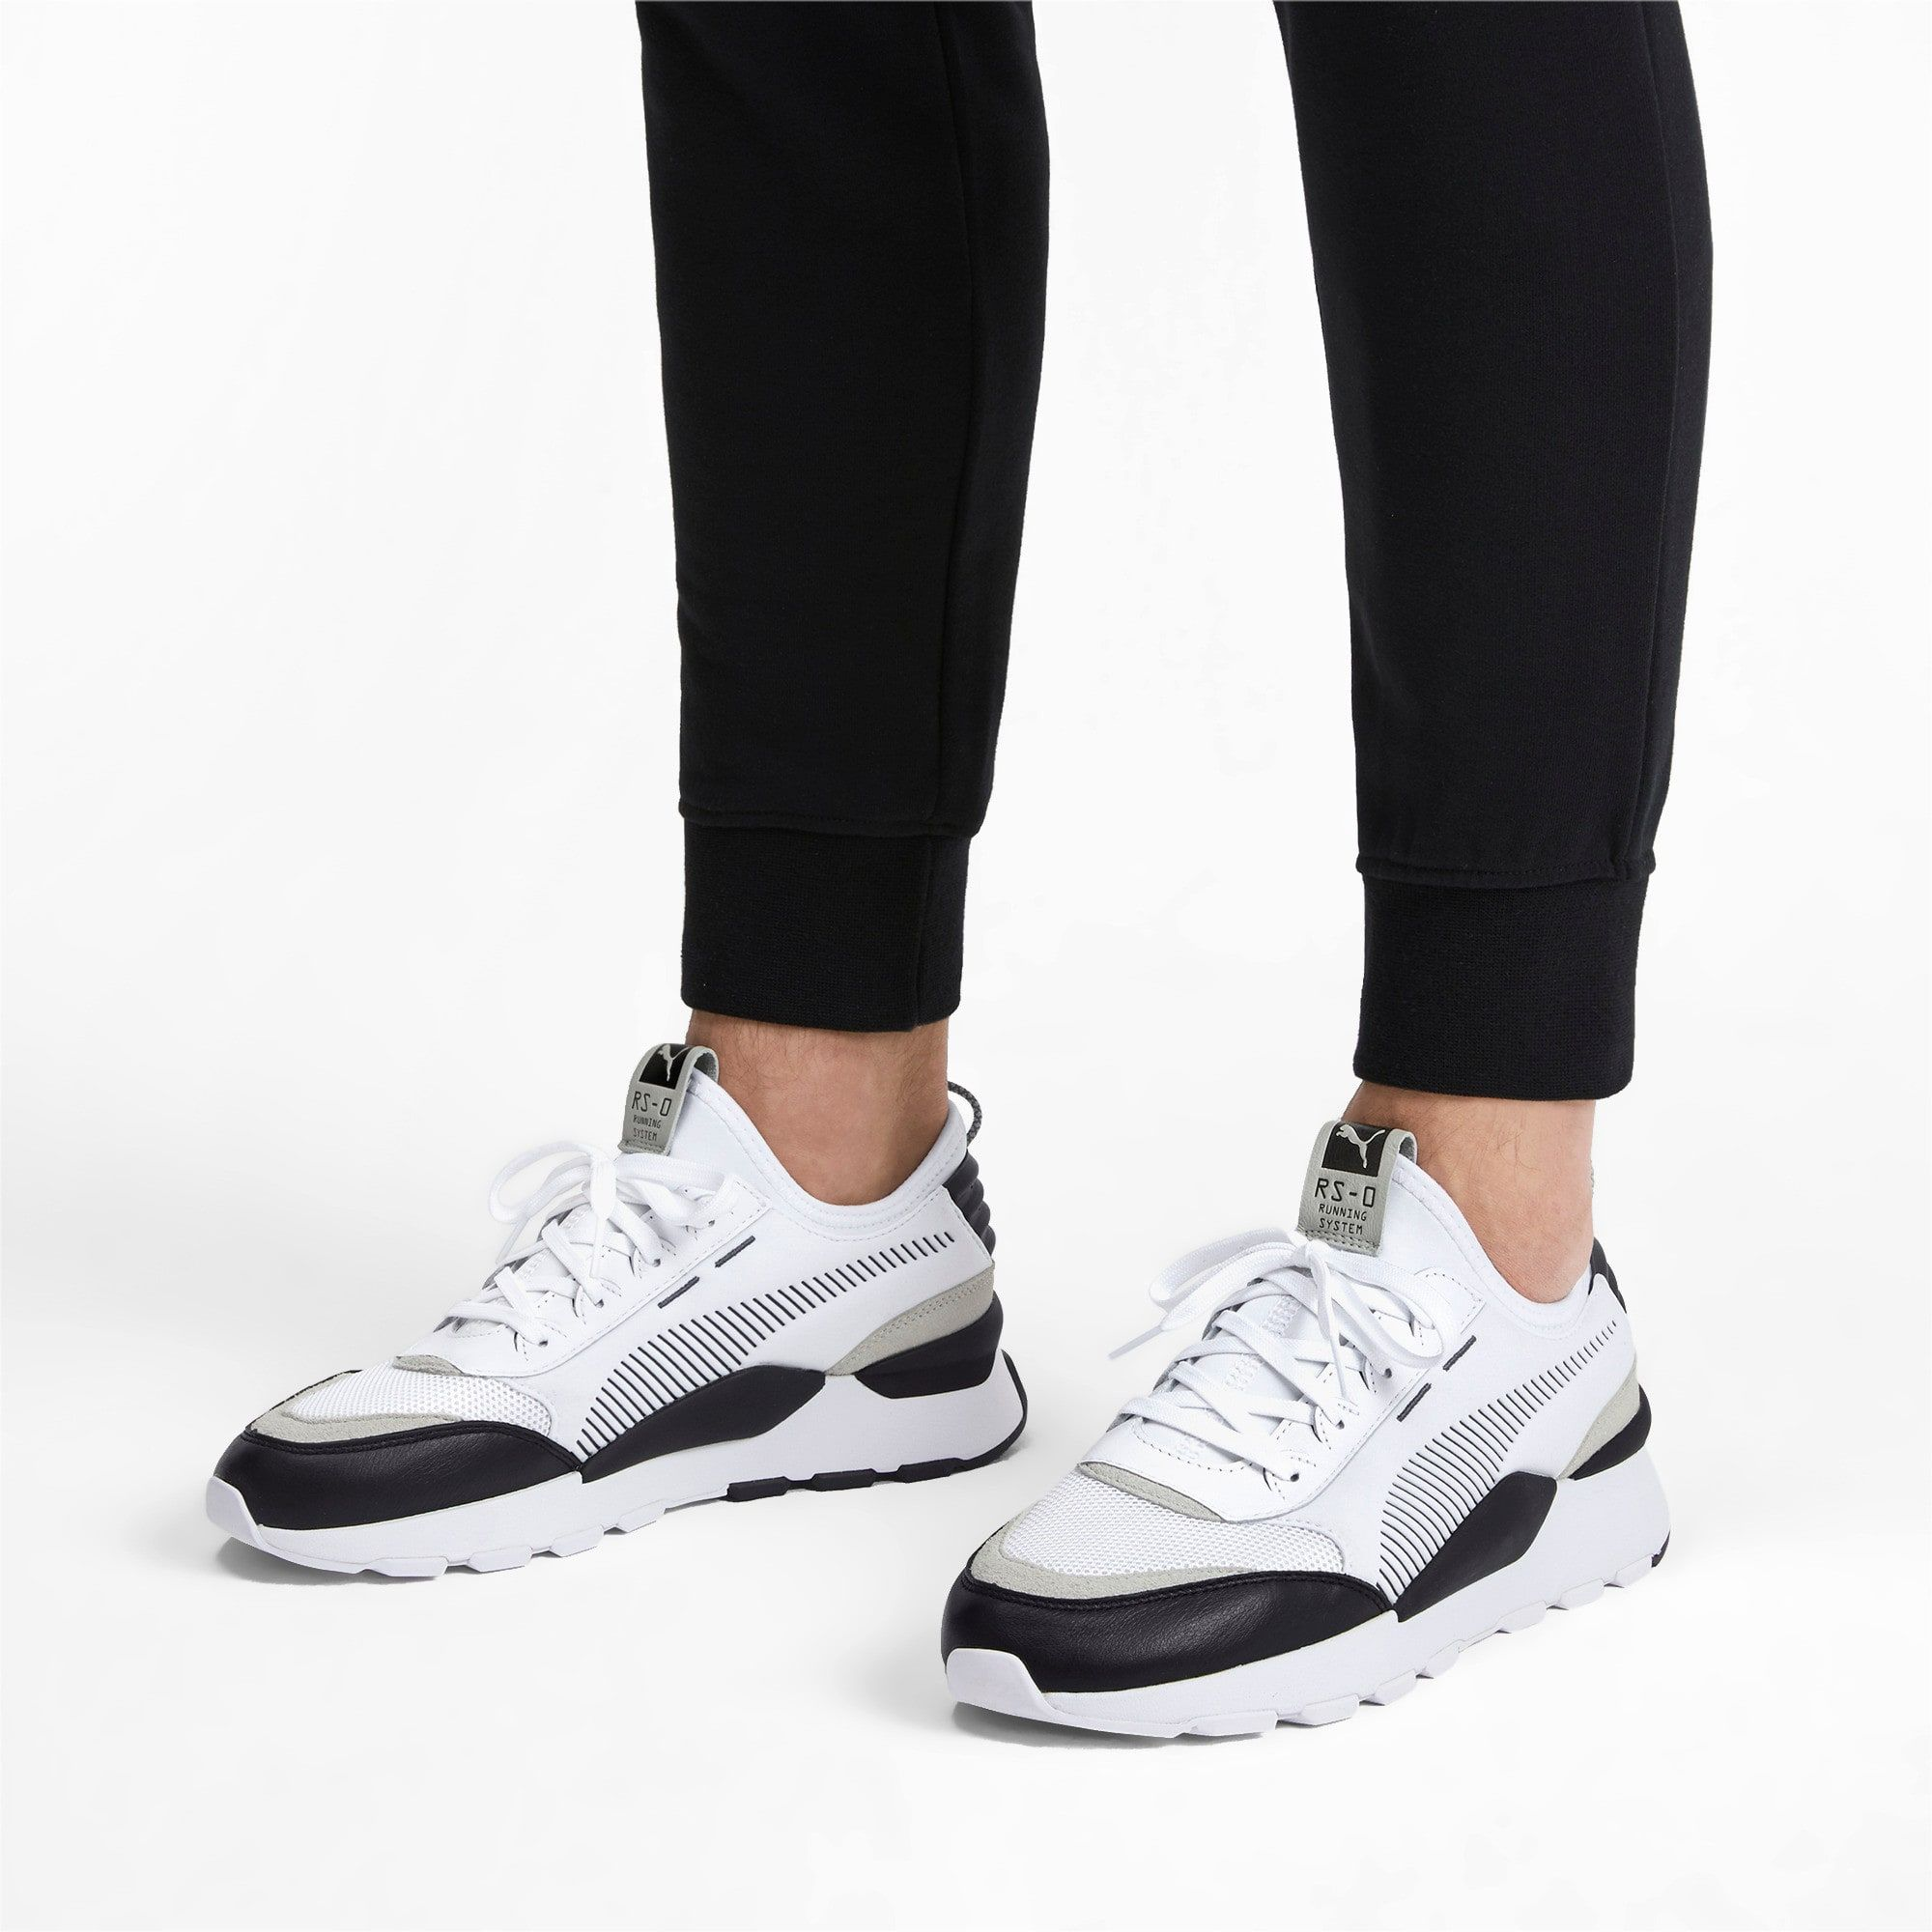 RS-0 Core Trainers   Pumas shoes, Trainers, Sneakers